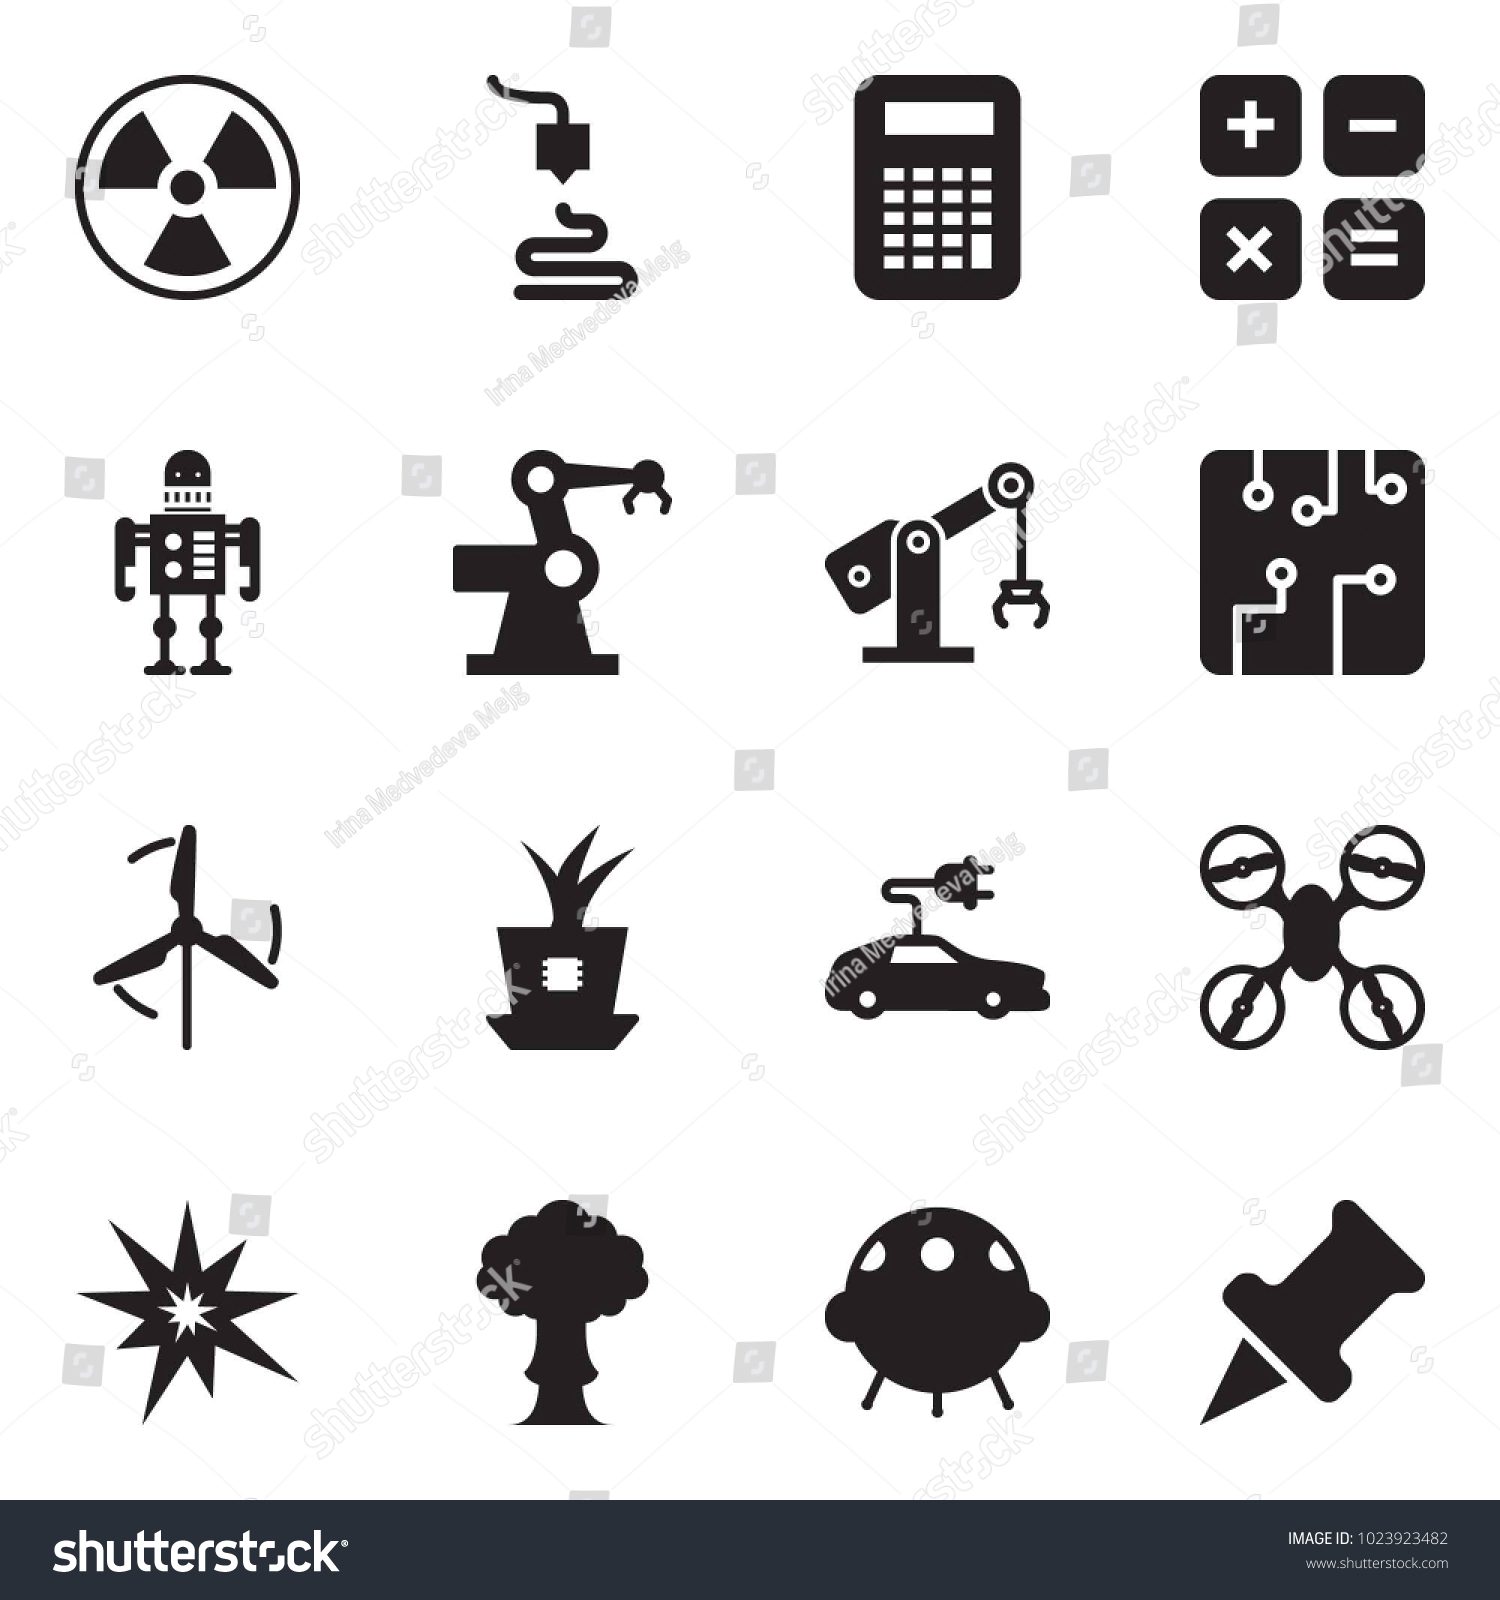 Solid Black Vector Icon Set Nuclear Stock Royalty Free Circuitry Of An Electronic Calculator Photography 3d Printer Robot